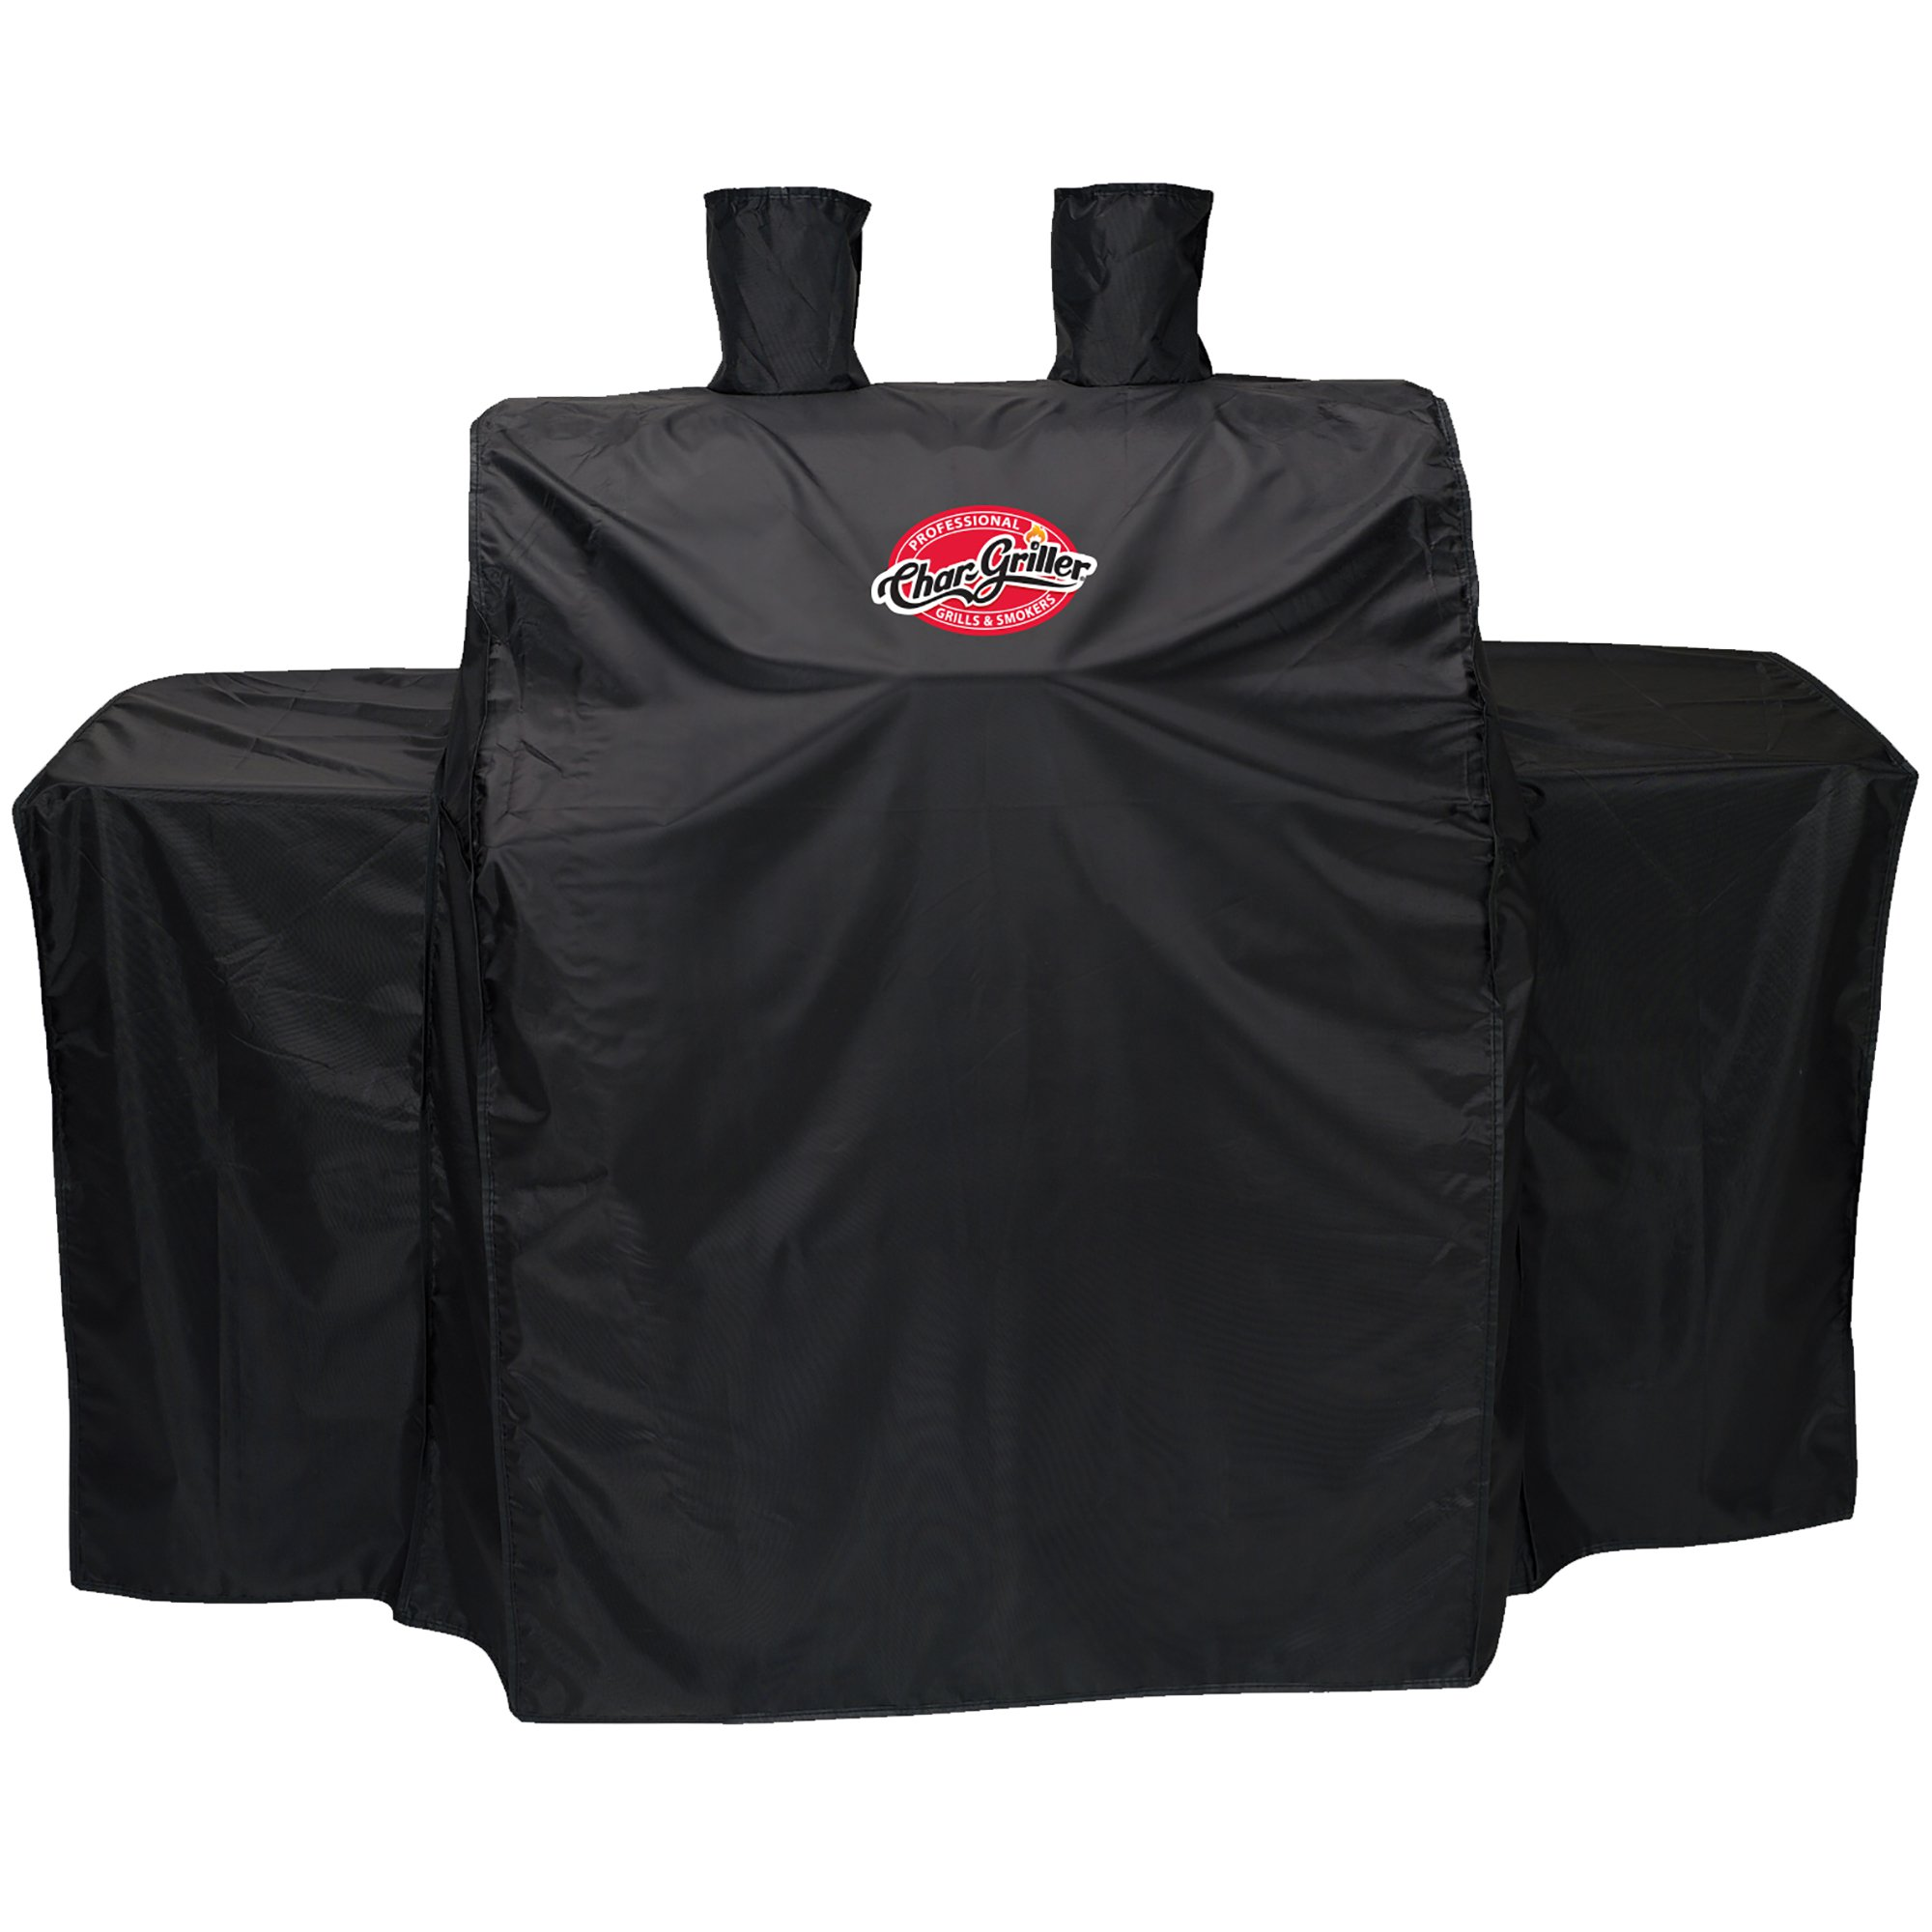 "Char-Griller 54"" X 25"" X 50"" Black Vinyl Grillin Pro Gas Grill Cover"